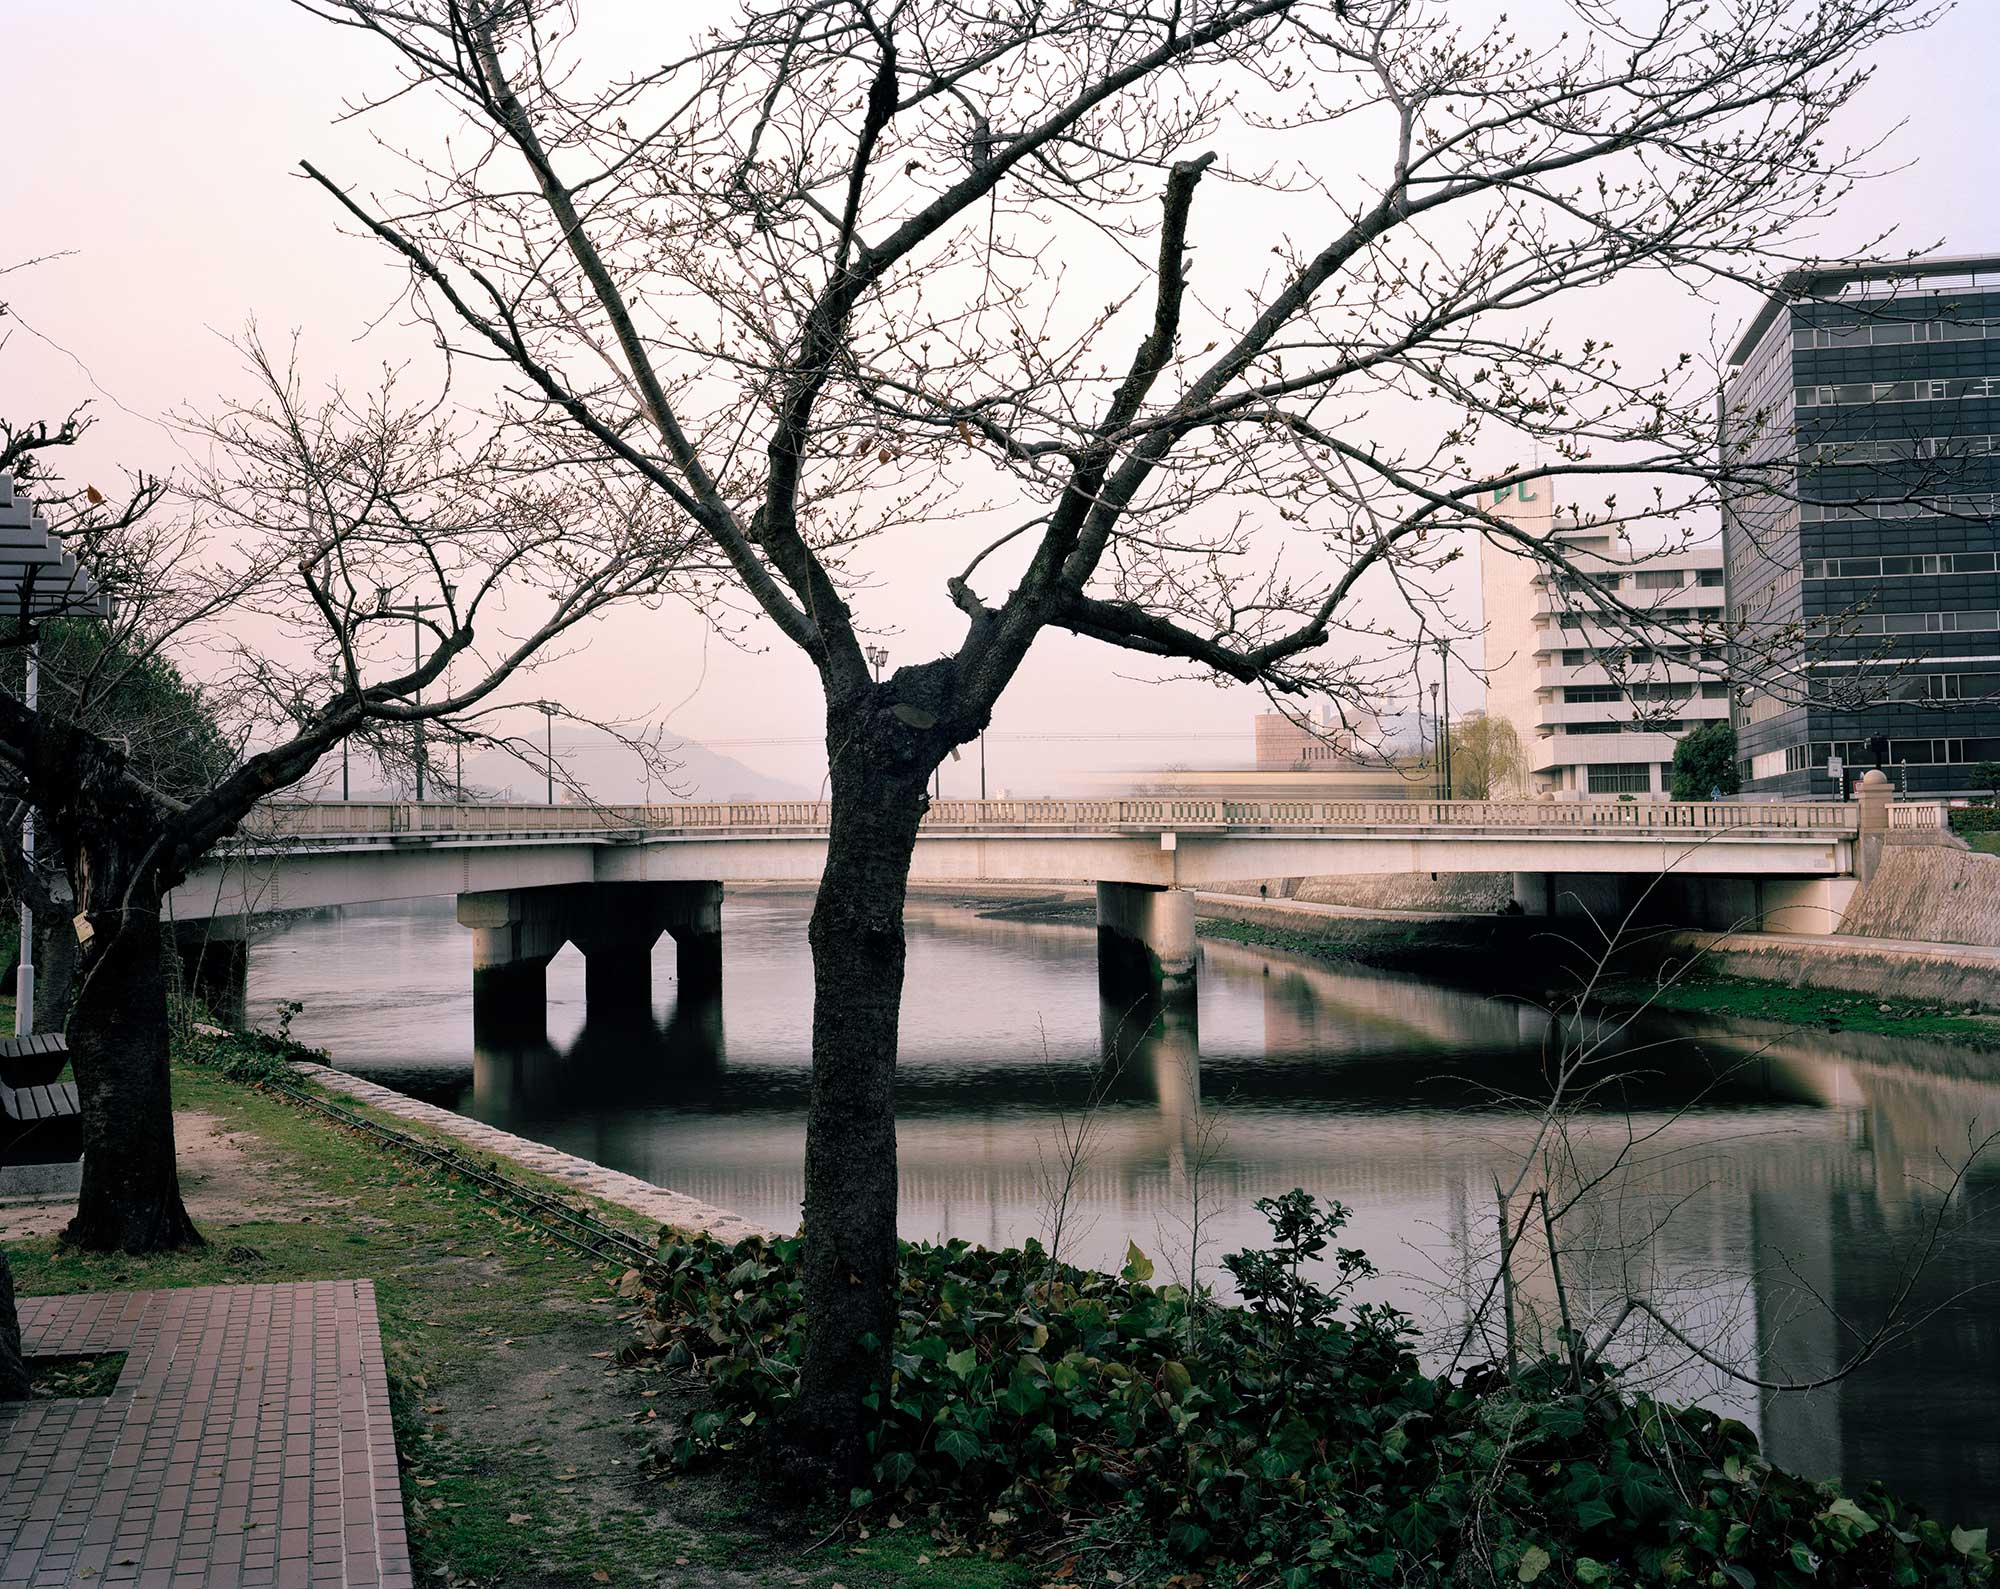 Aioi Bridge at Dusk (T-Bridge, Aiming Point for the Bomb), Hiroshima, about 200 meters from the hypocenter, March 2013, Chromogenic print, 30 x 40 inch.